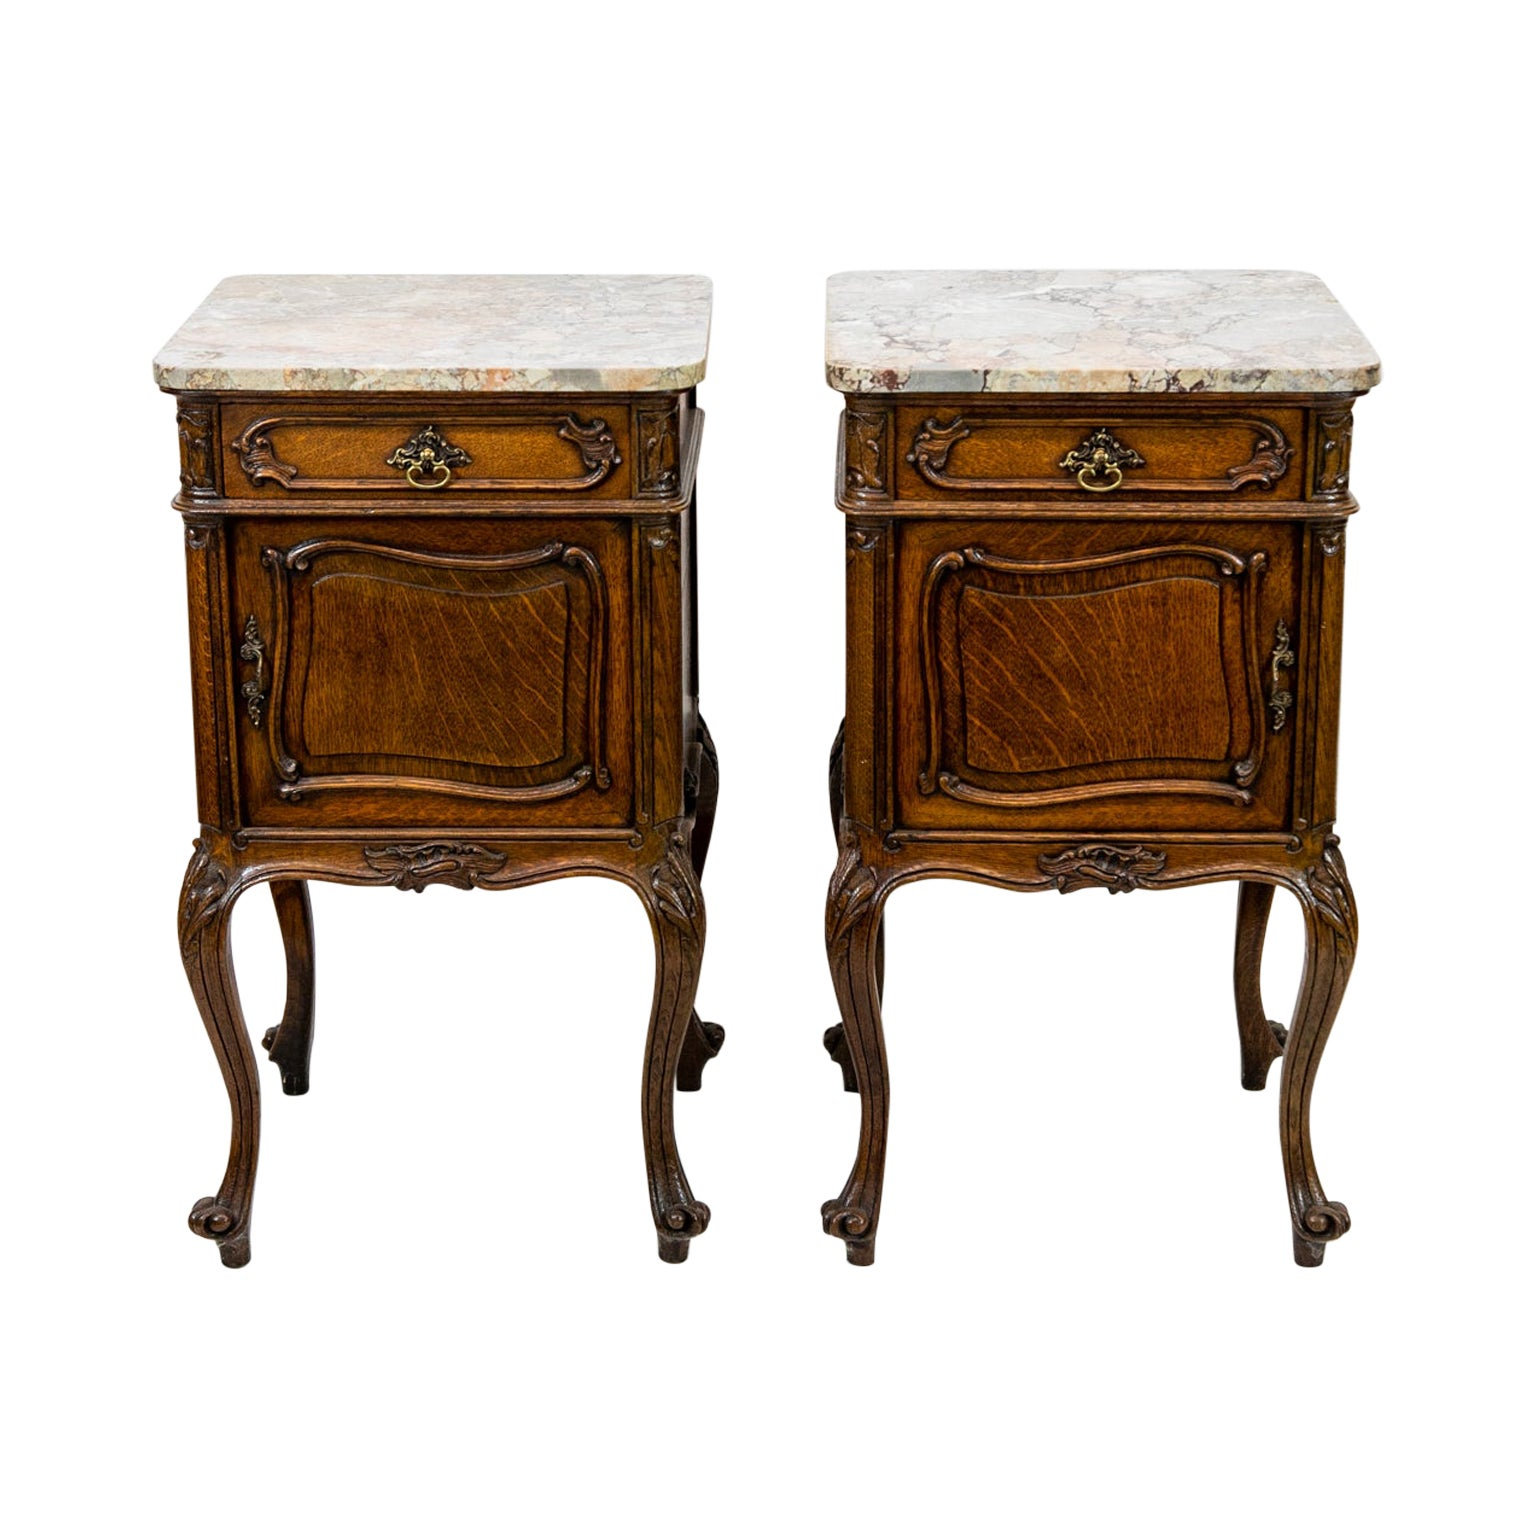 Pair of French Marble-Top Commodes